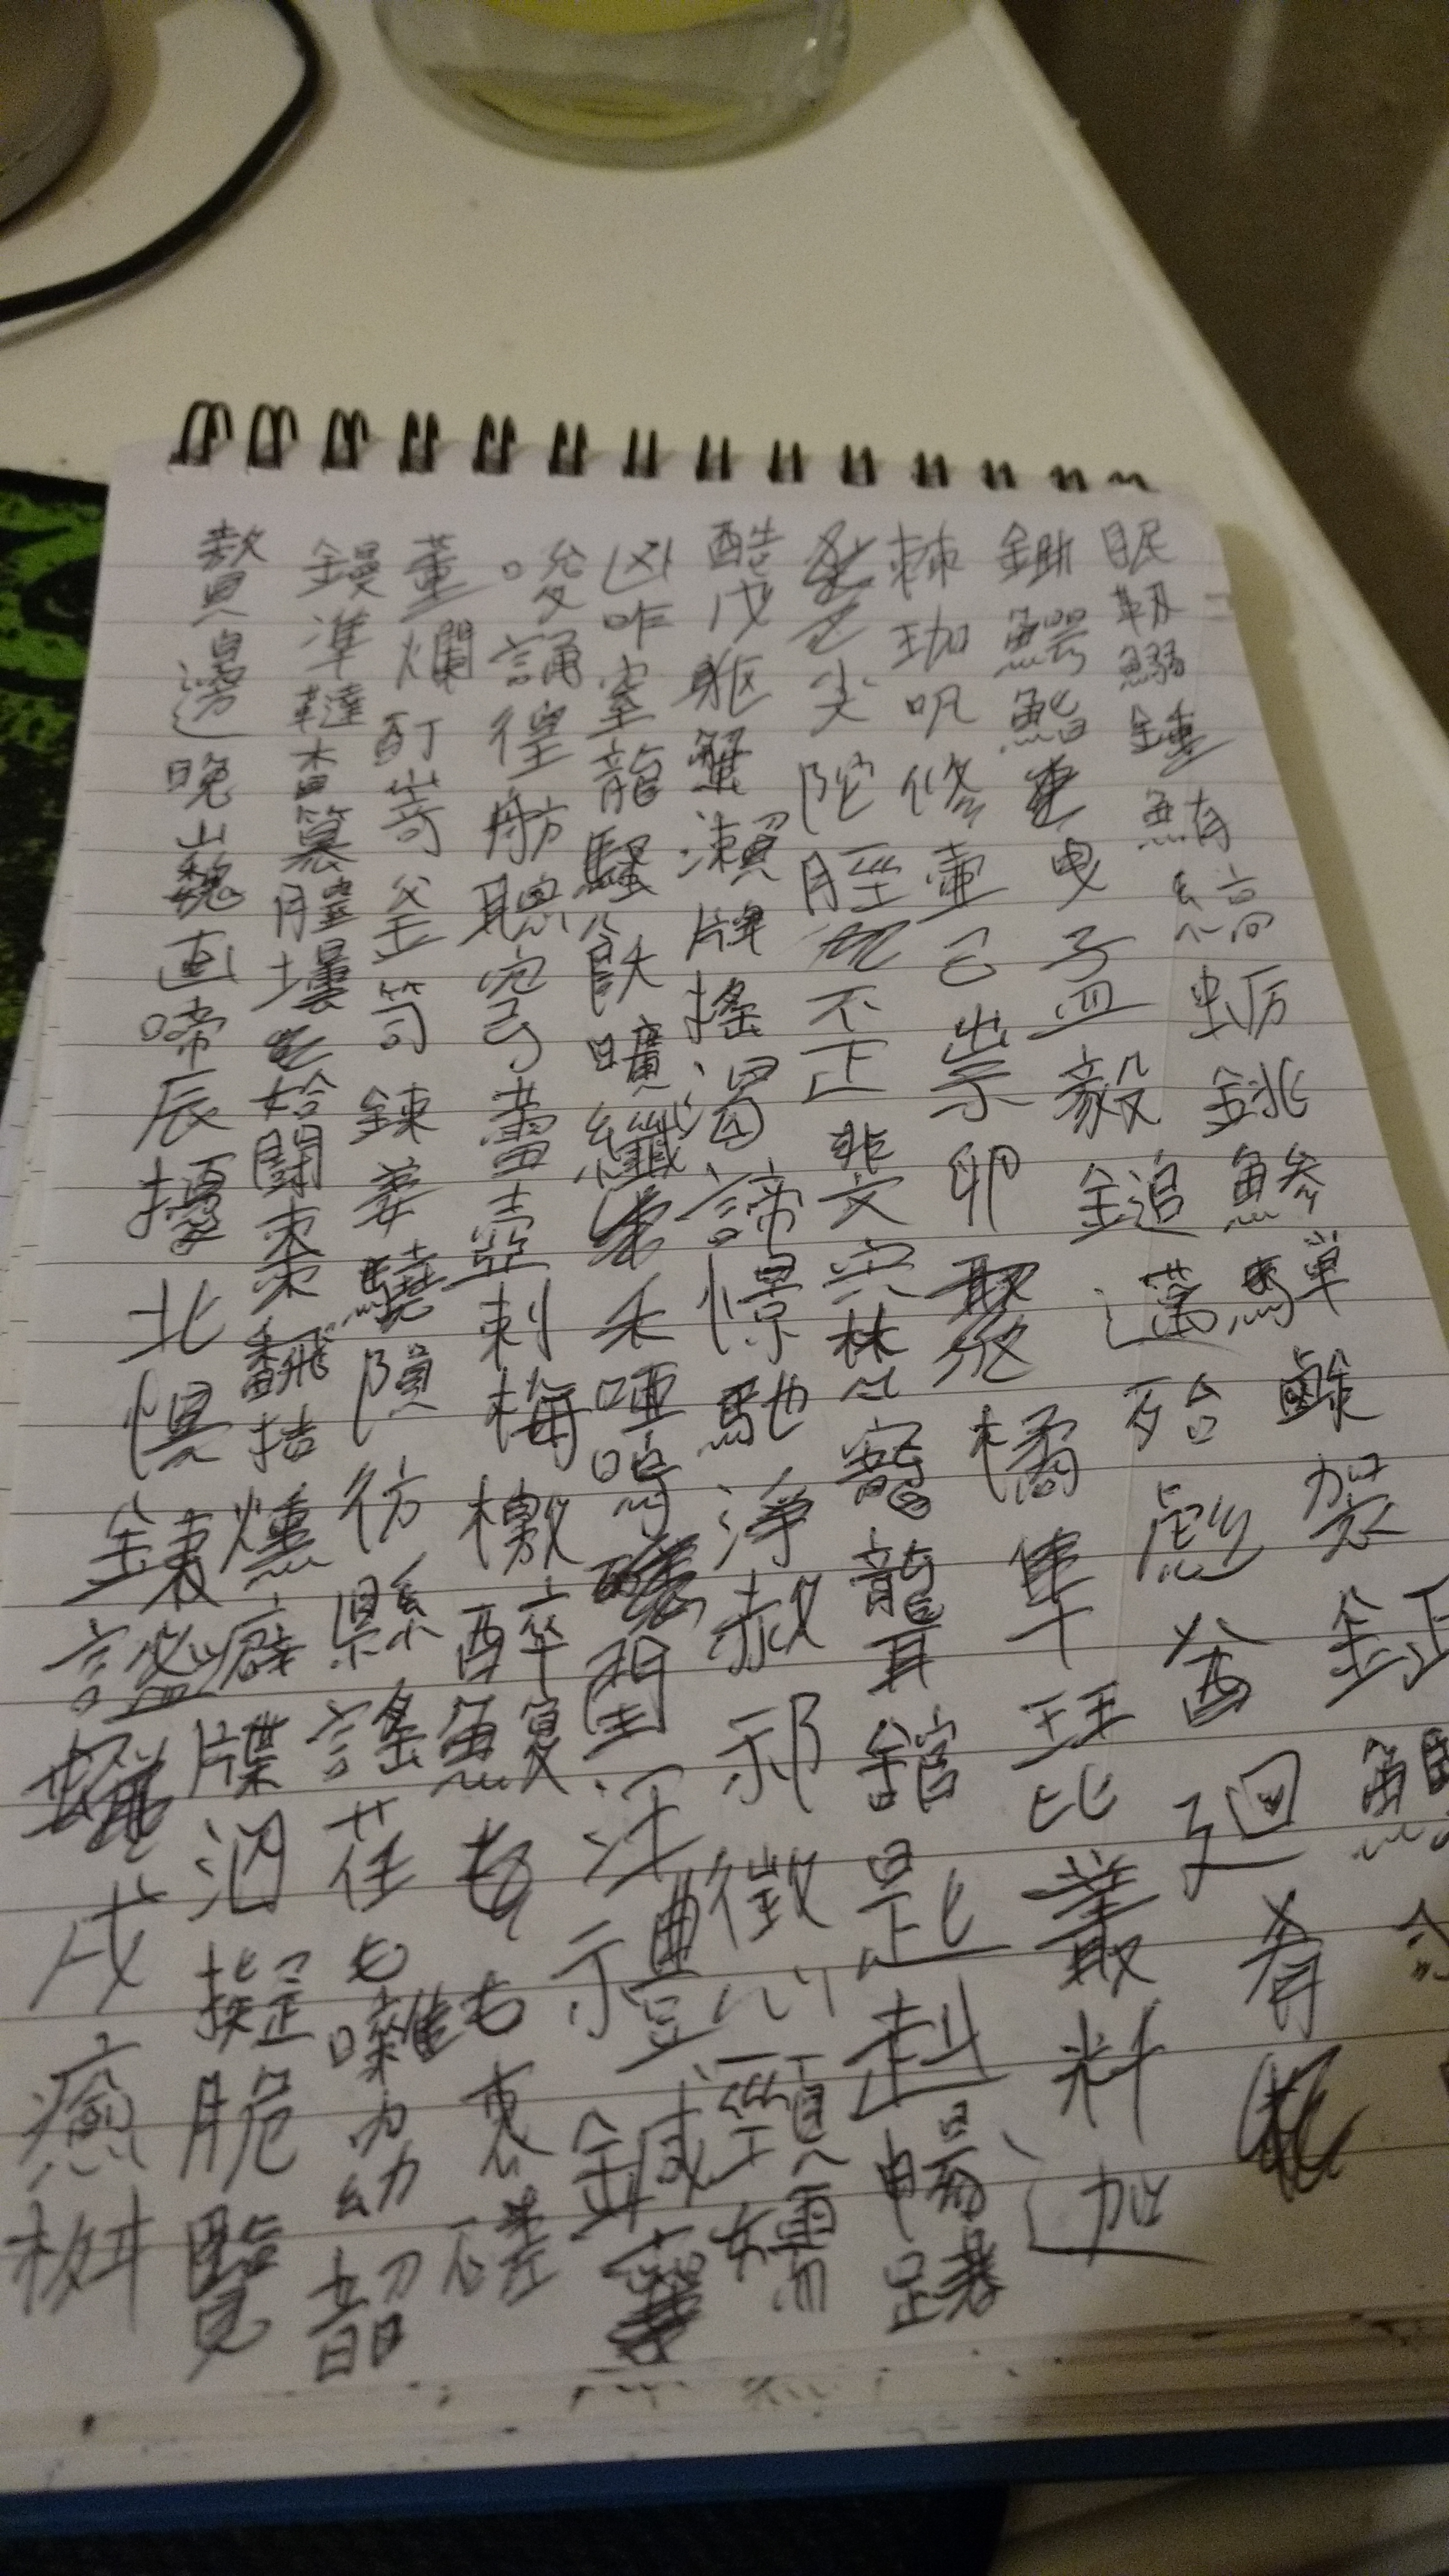 remembering the kanji tips - writing kanji